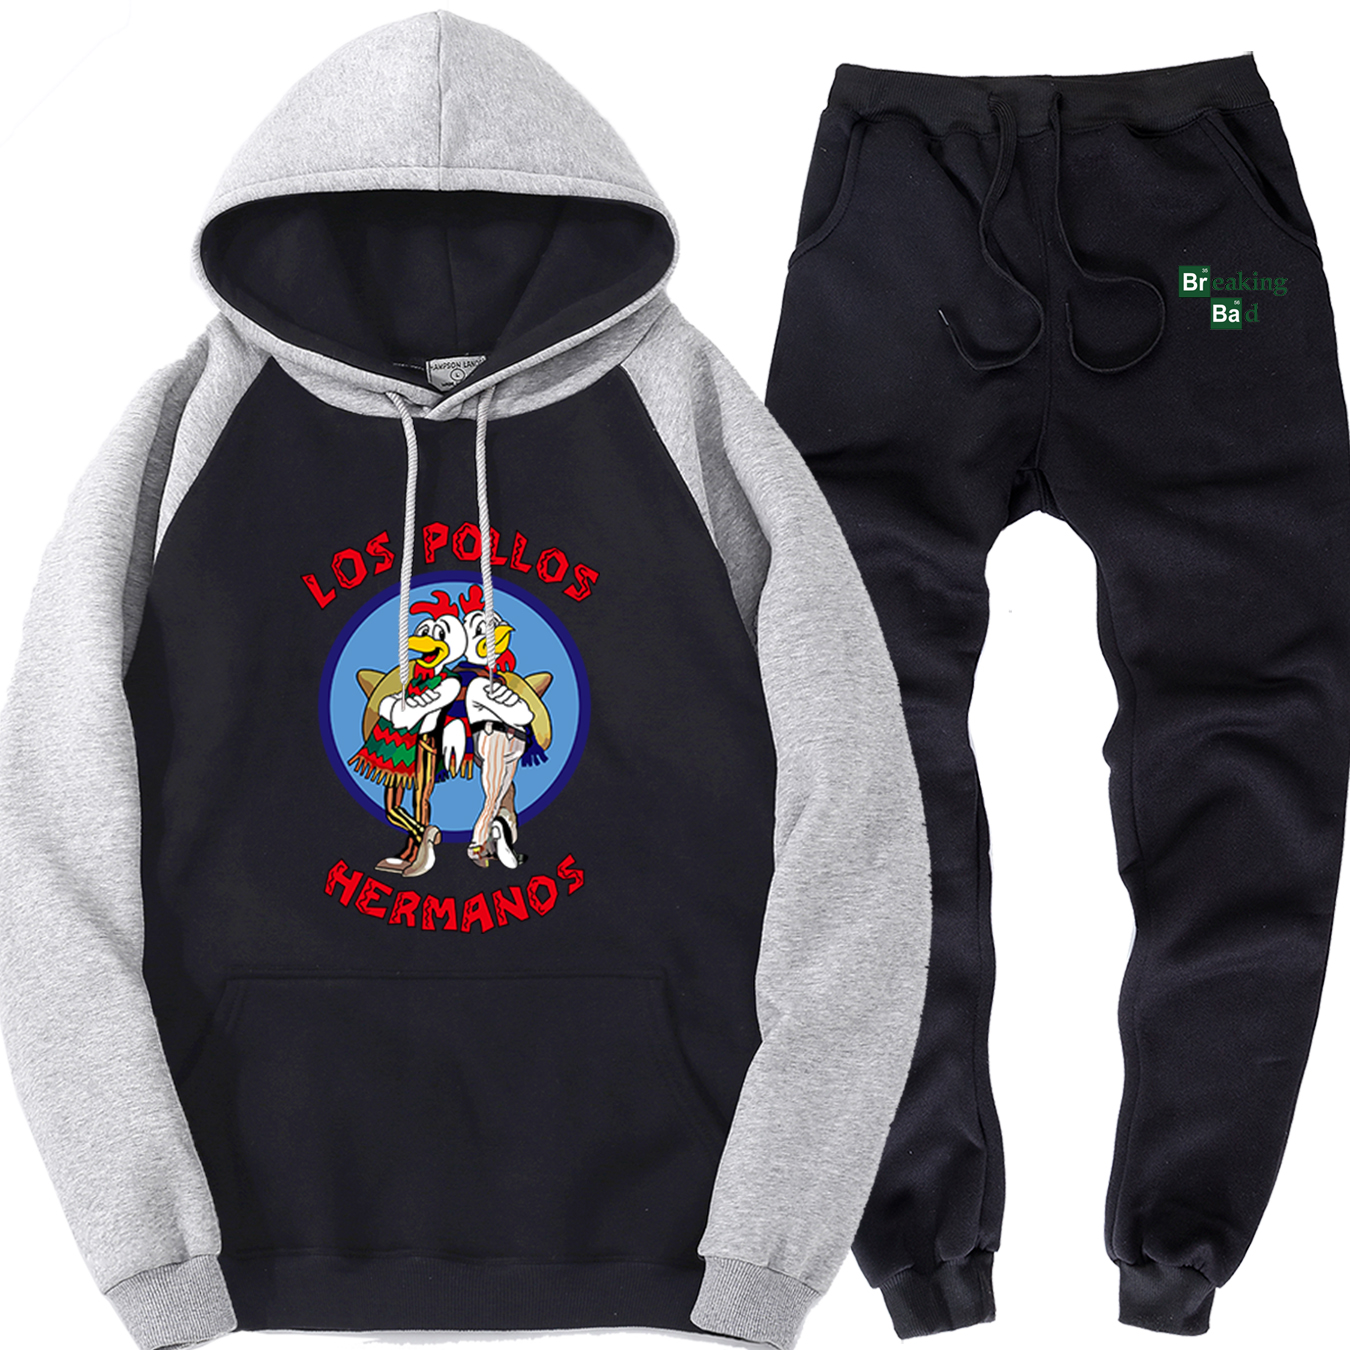 LOS POLLOS Hermanos Sweat Suits Men 2019 New Fashion Male Sports Clothing 2 Piece Sets Streetwear Brand Sweatpants Mens Pullover